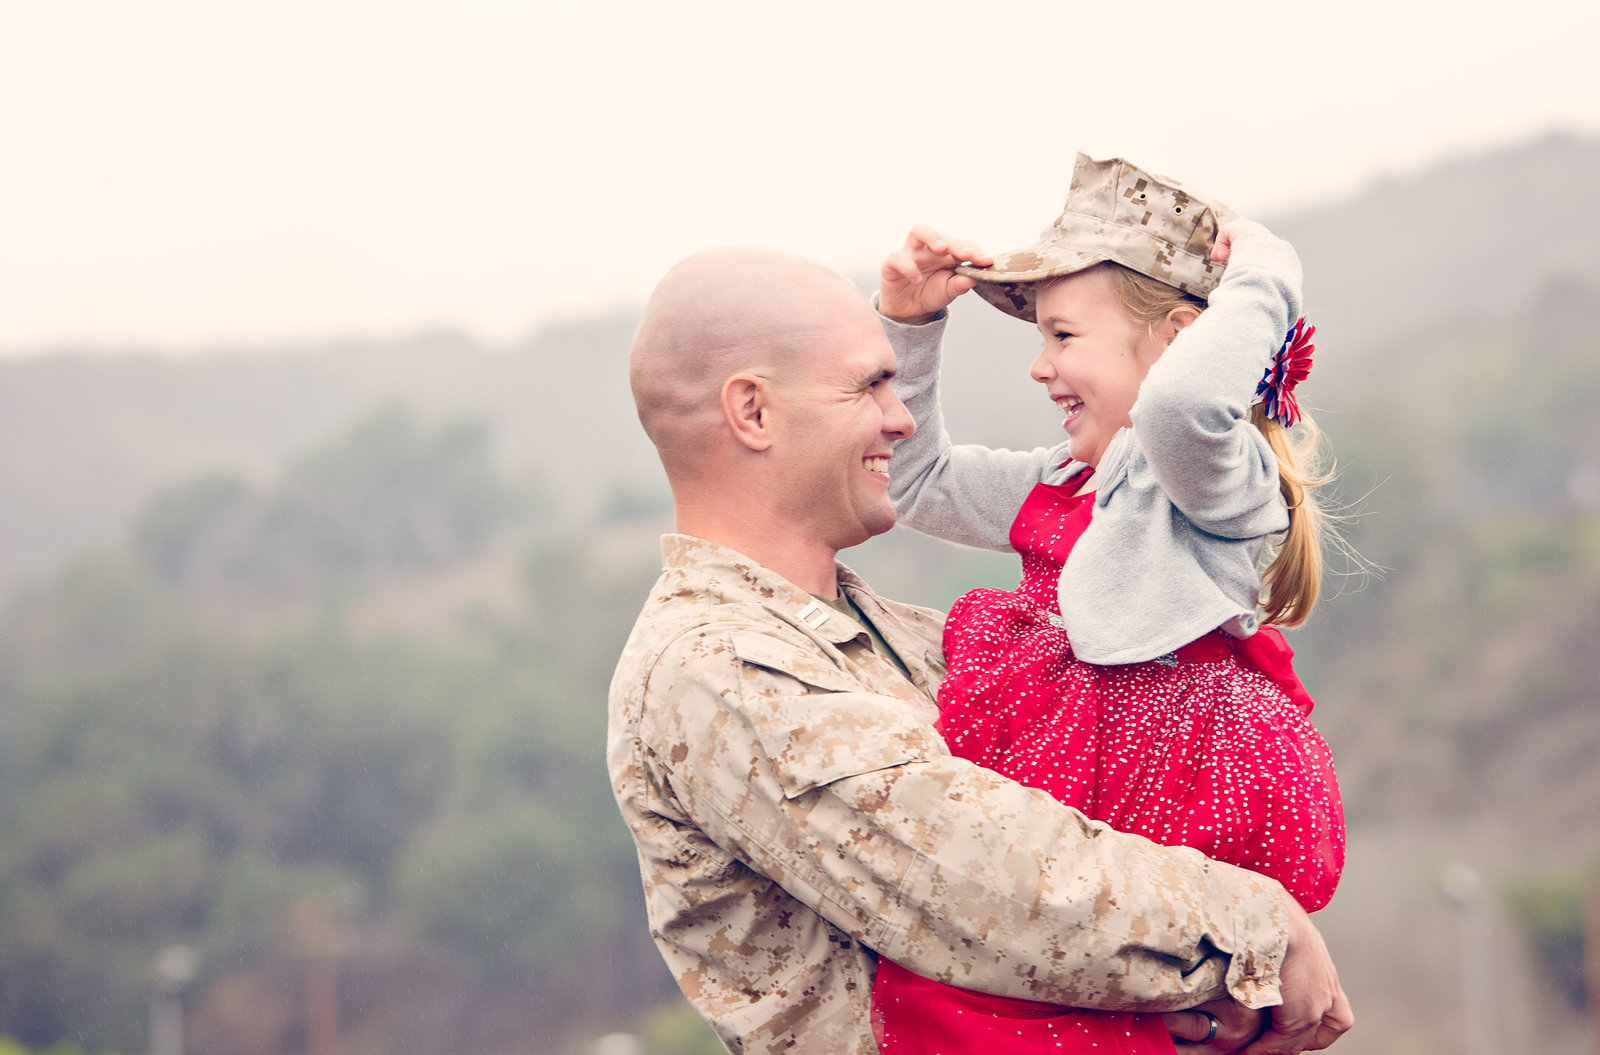 Homecoming photograph of deployed marine holding daughter wearing his uniform hat by inGRACE photography